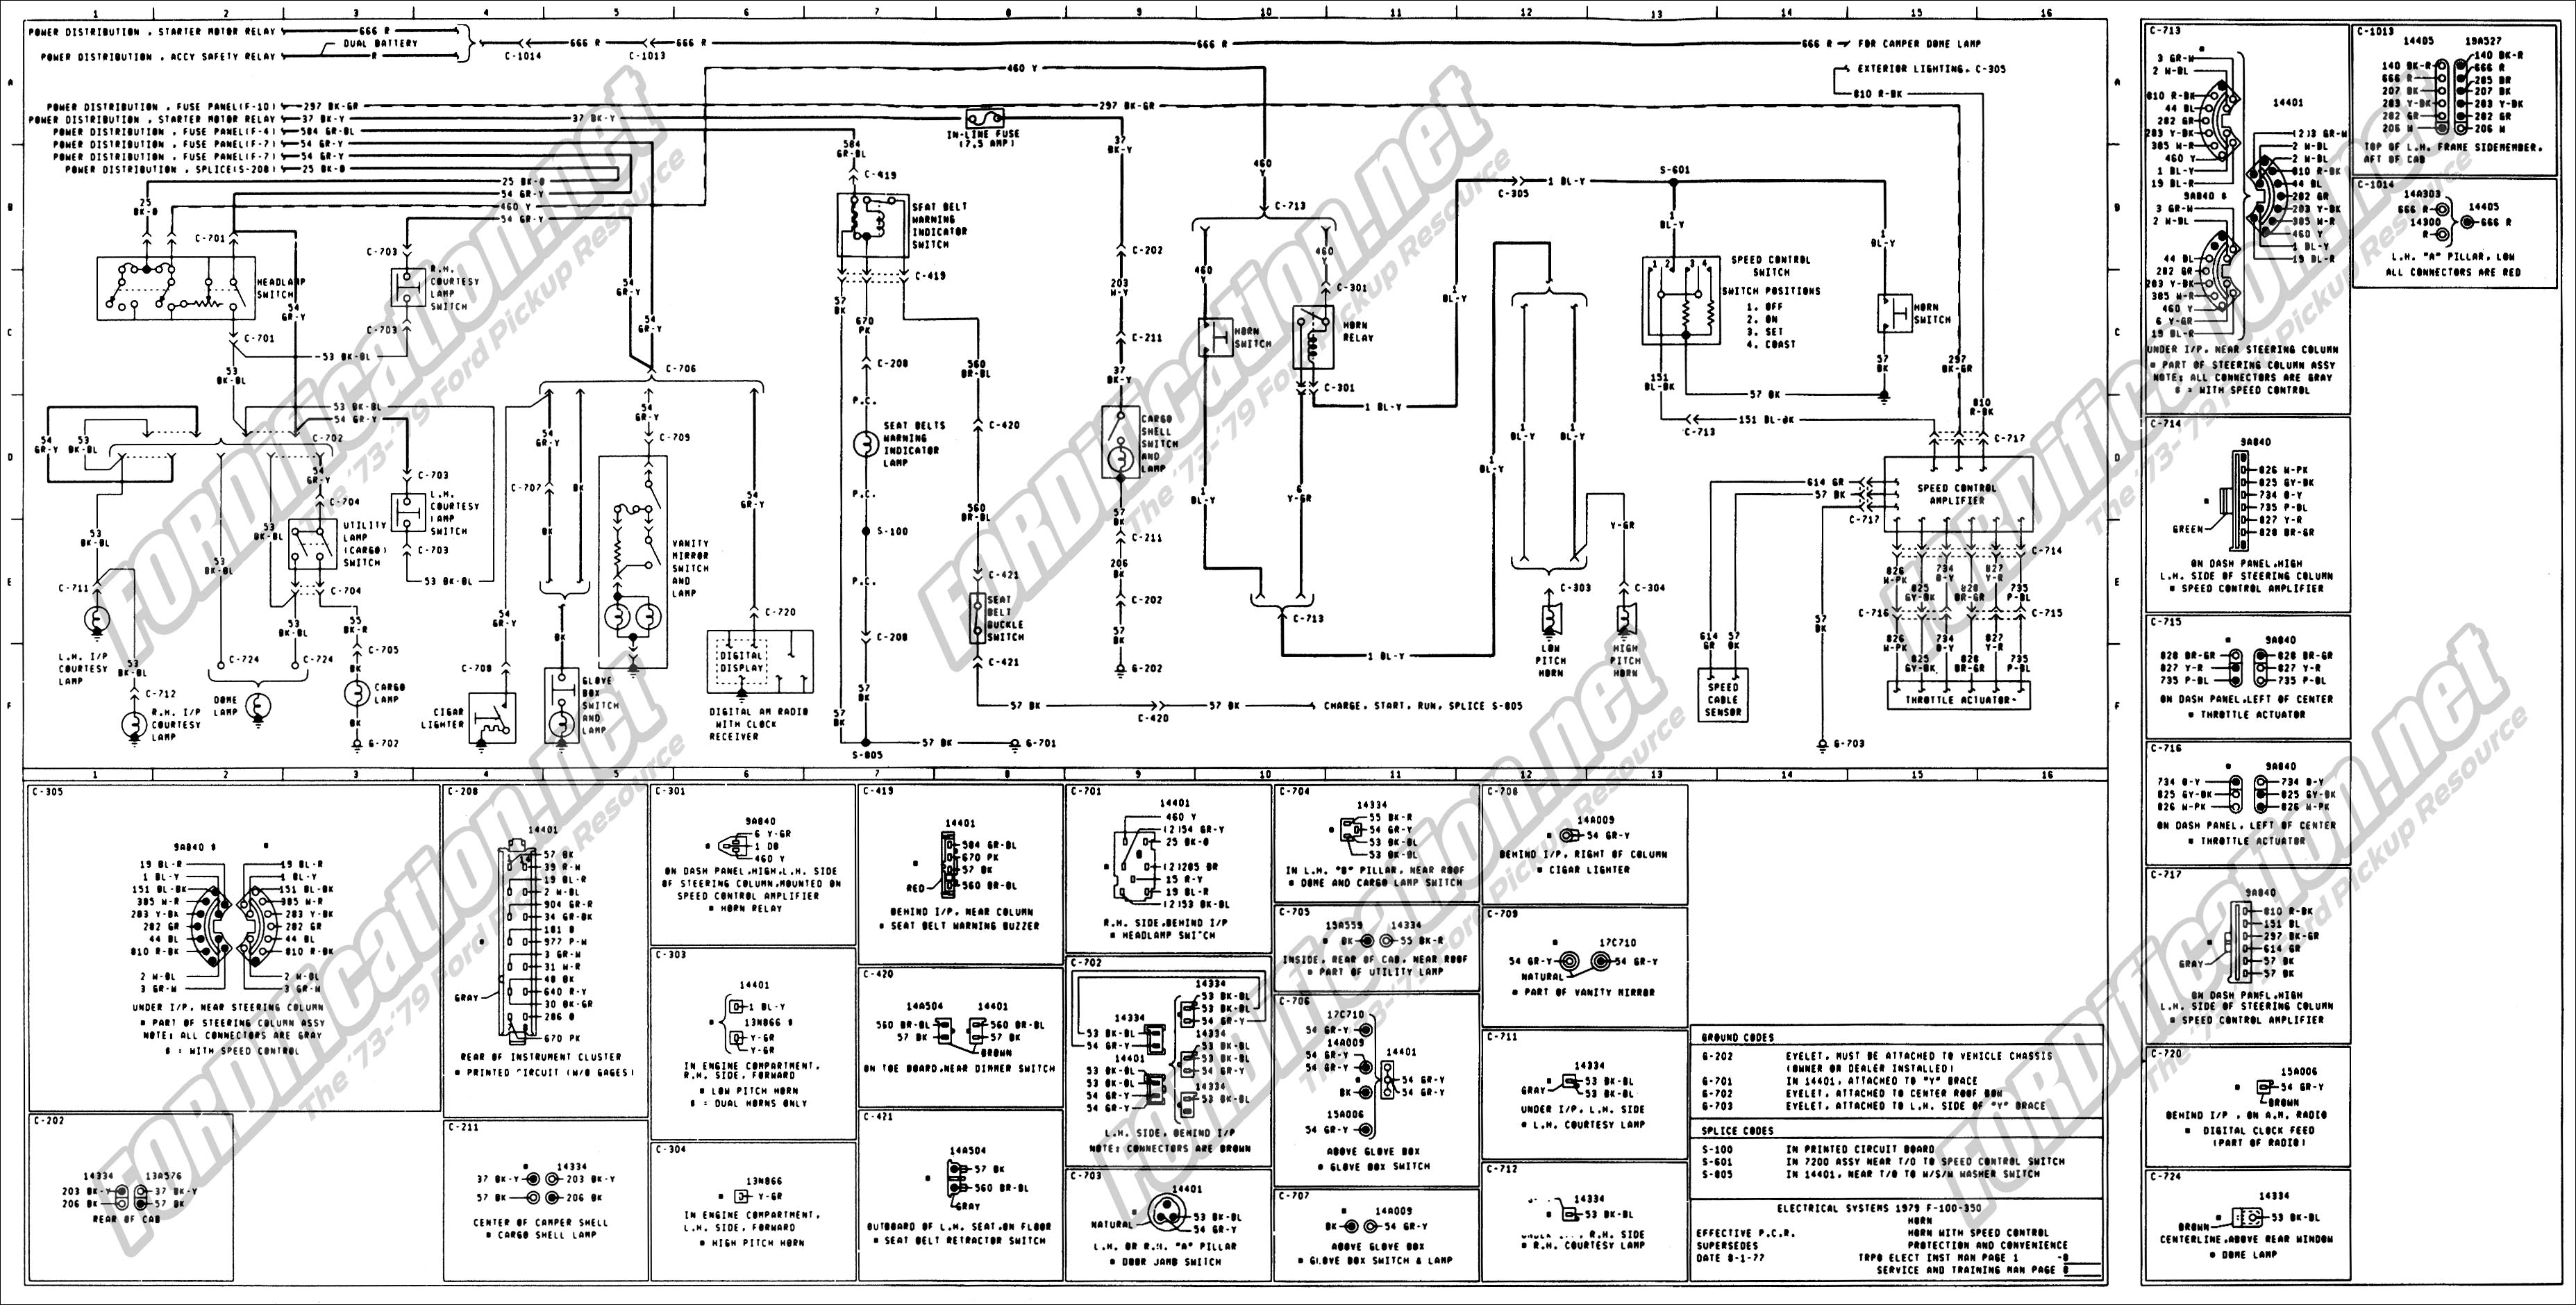 1973 1979 ford truck wiring diagrams schematics fordification net rh fordification net 1979 ford f150 wiring diagram 1979 ford truck wiring diagram